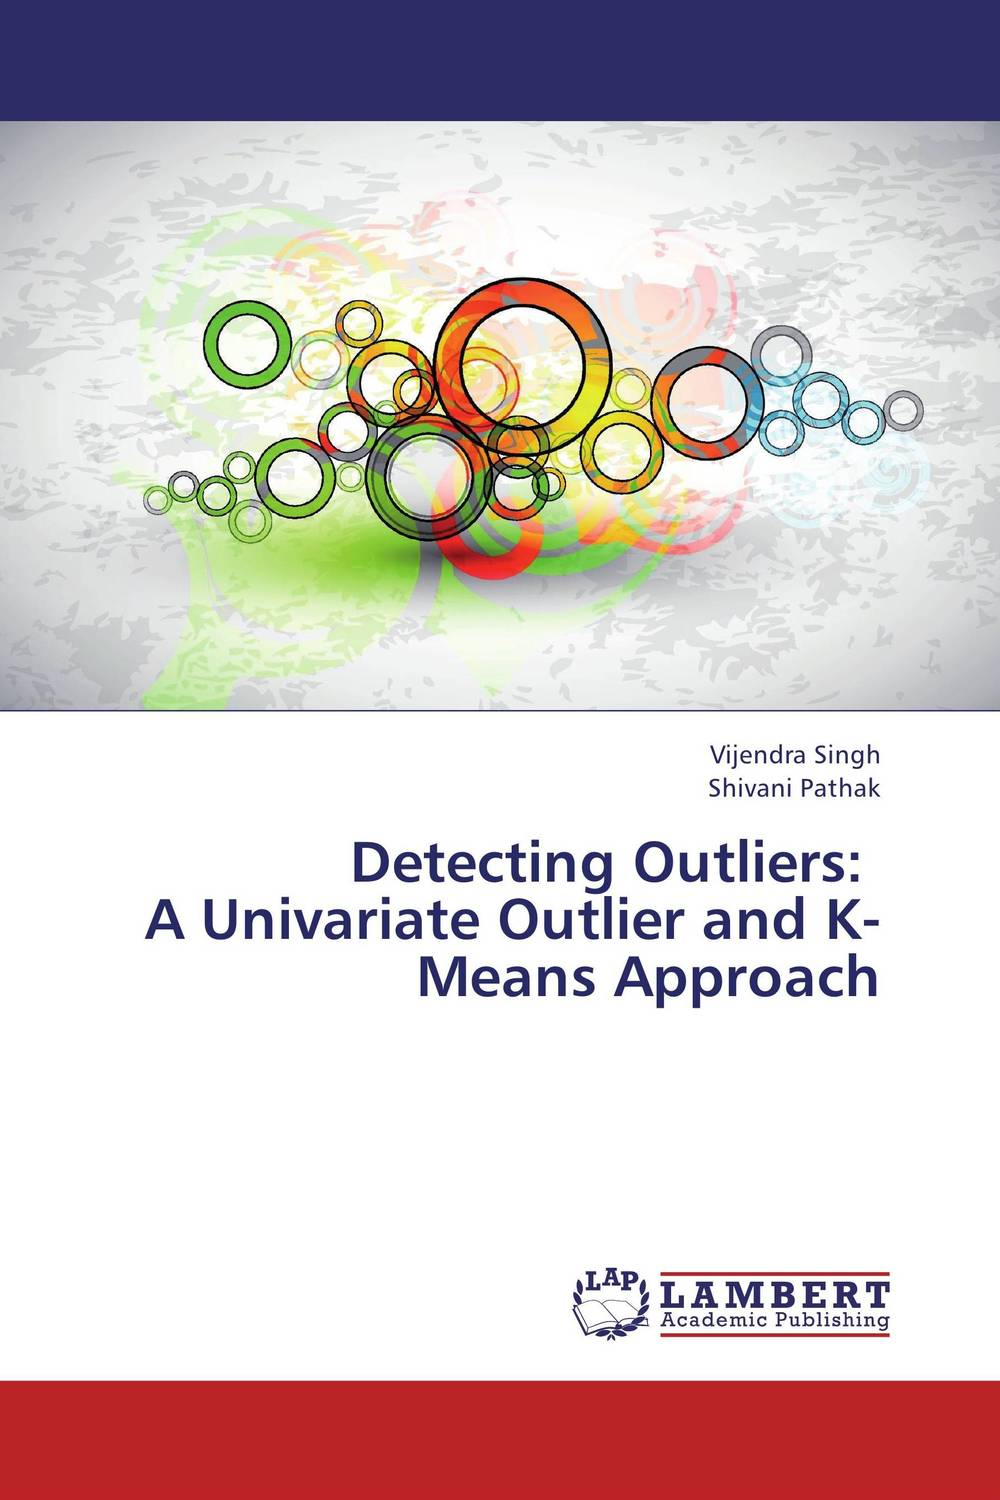 Detecting Outliers:   A Univariate Outlier and K-Means Approach ahmed omar abdallah tarek moustafa mahmoud and tarek abd el hafeez abd el rahman filtering pornography based on face detection and content analysis